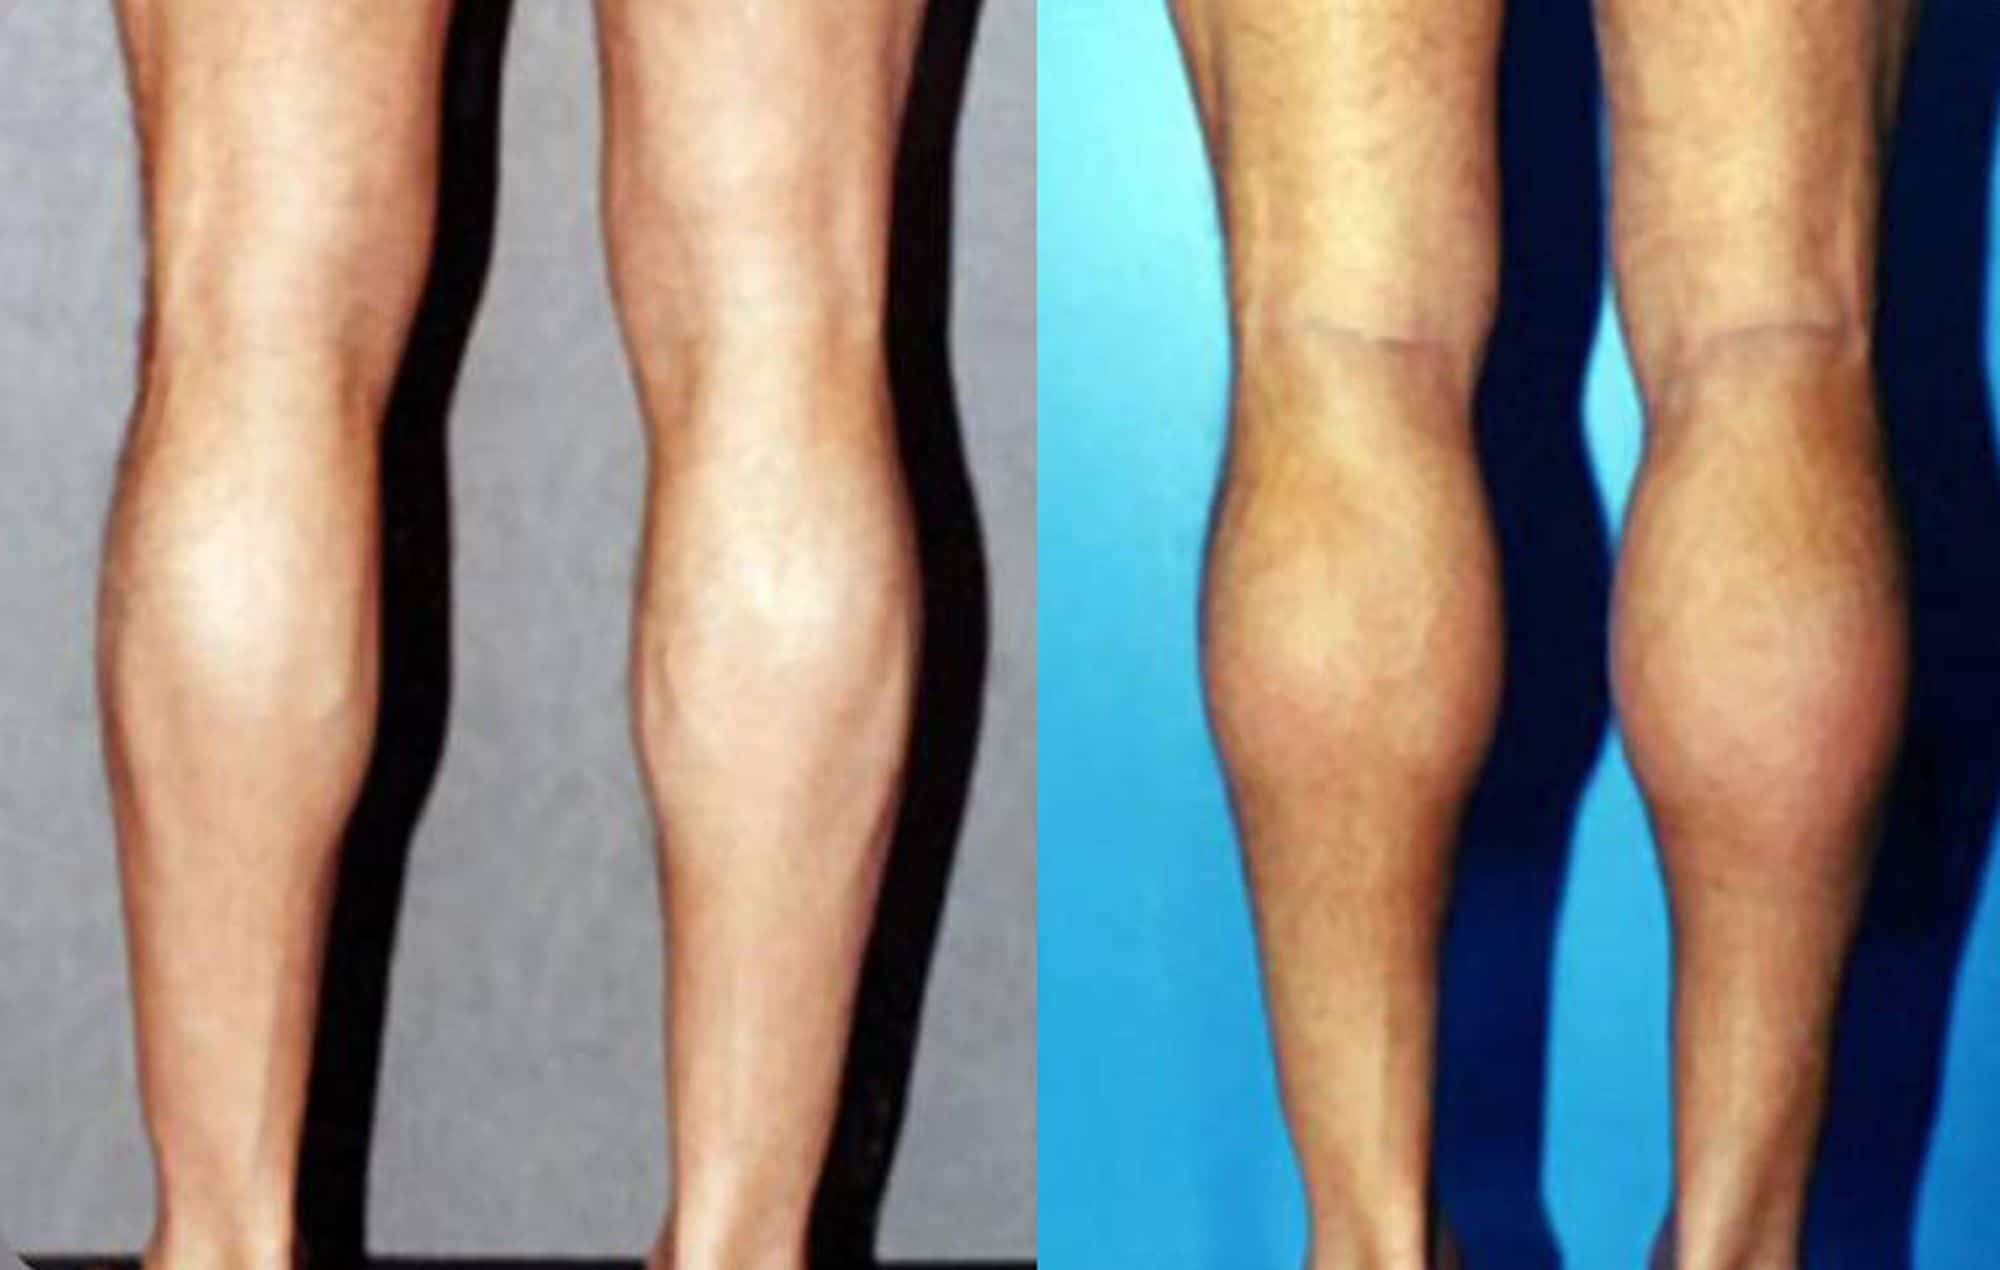 Calf muscle implants - Picture 3